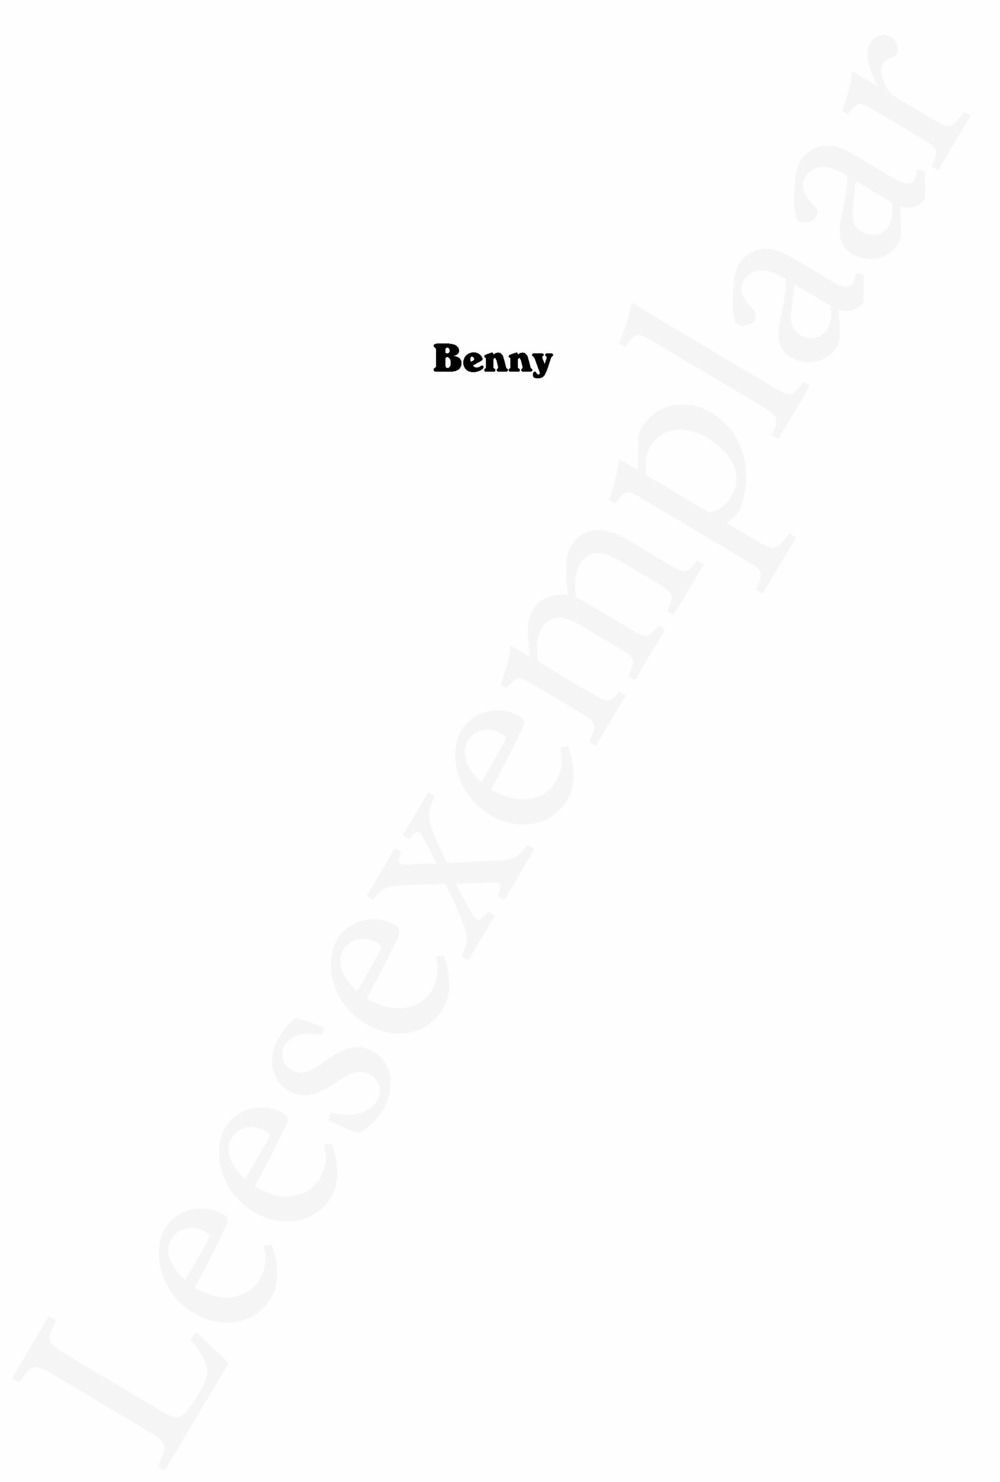 Preview: Benny